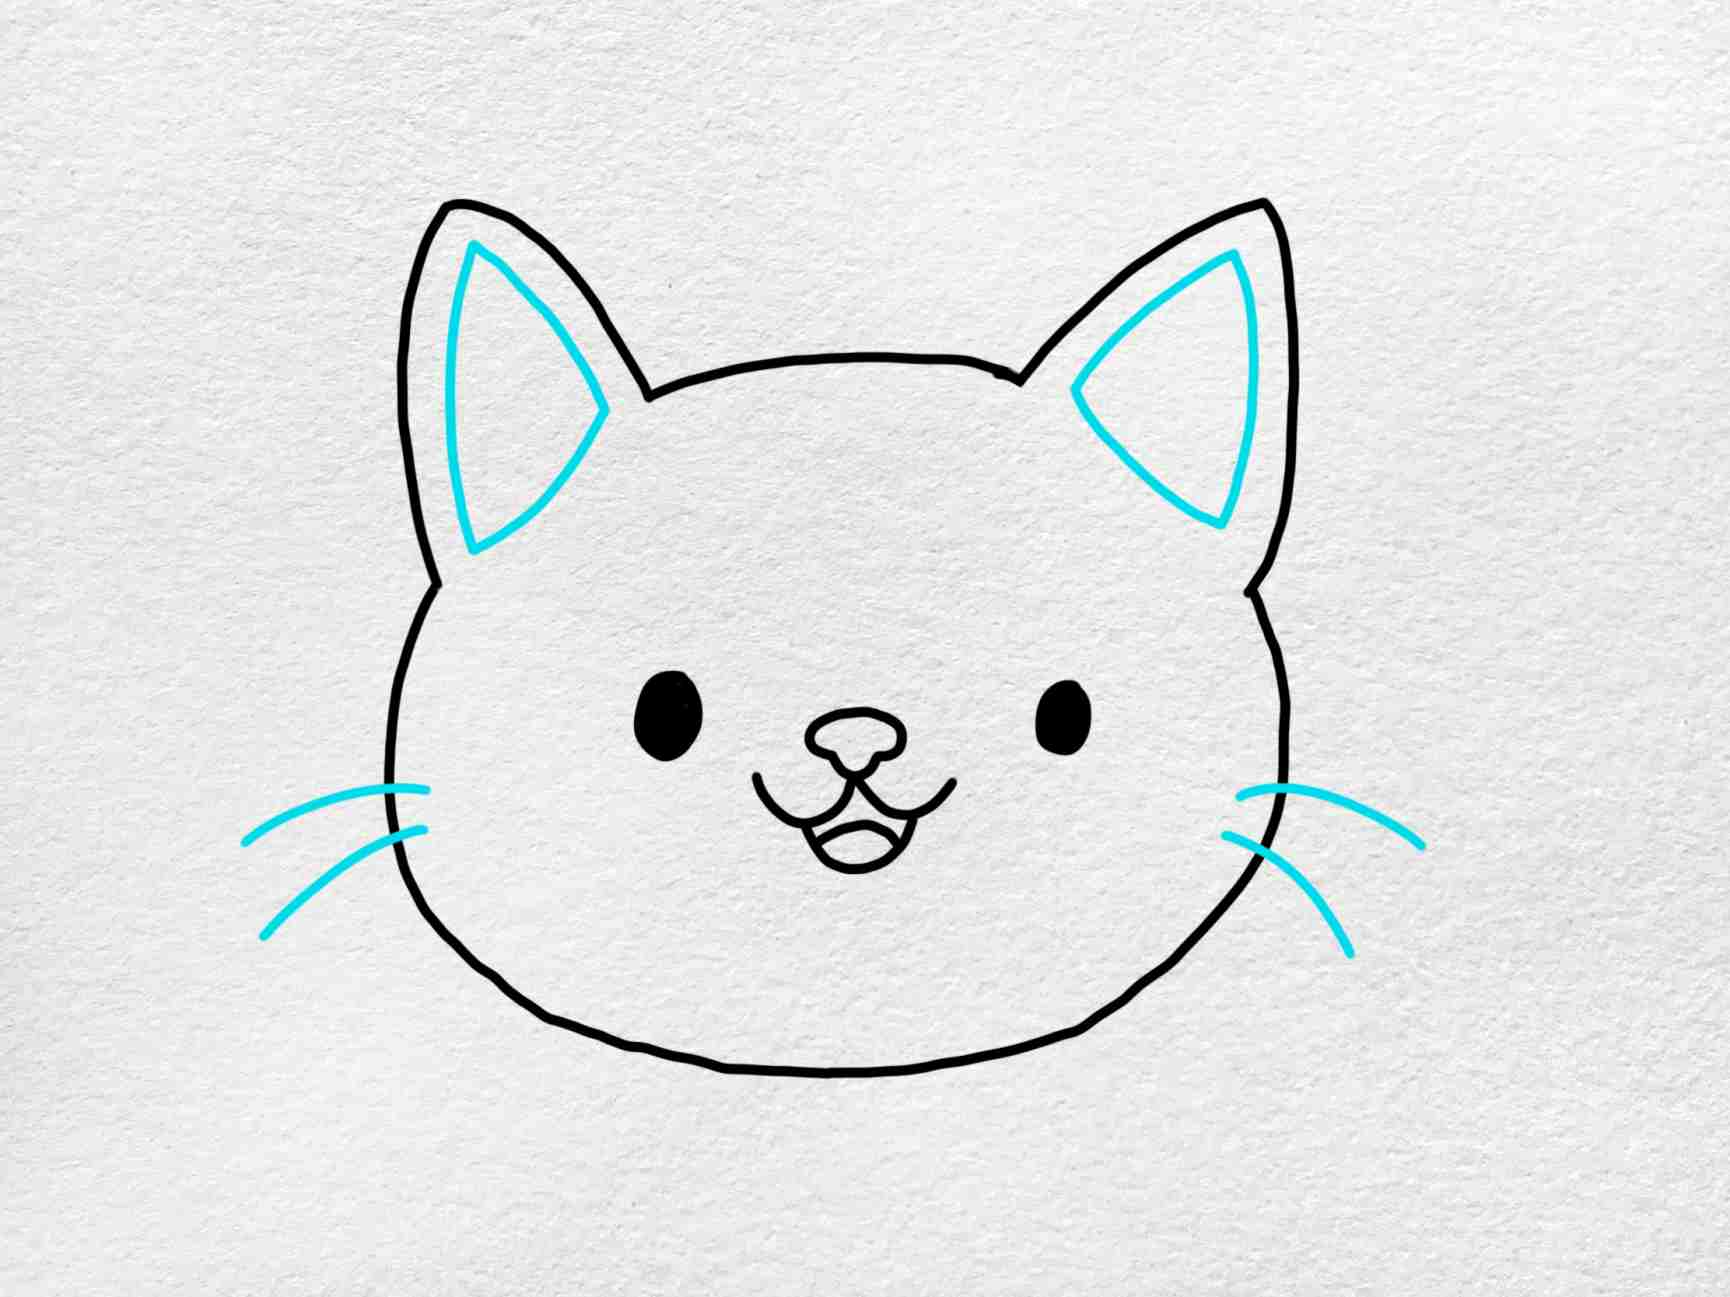 Easy Cat Face Drawing: Step 4